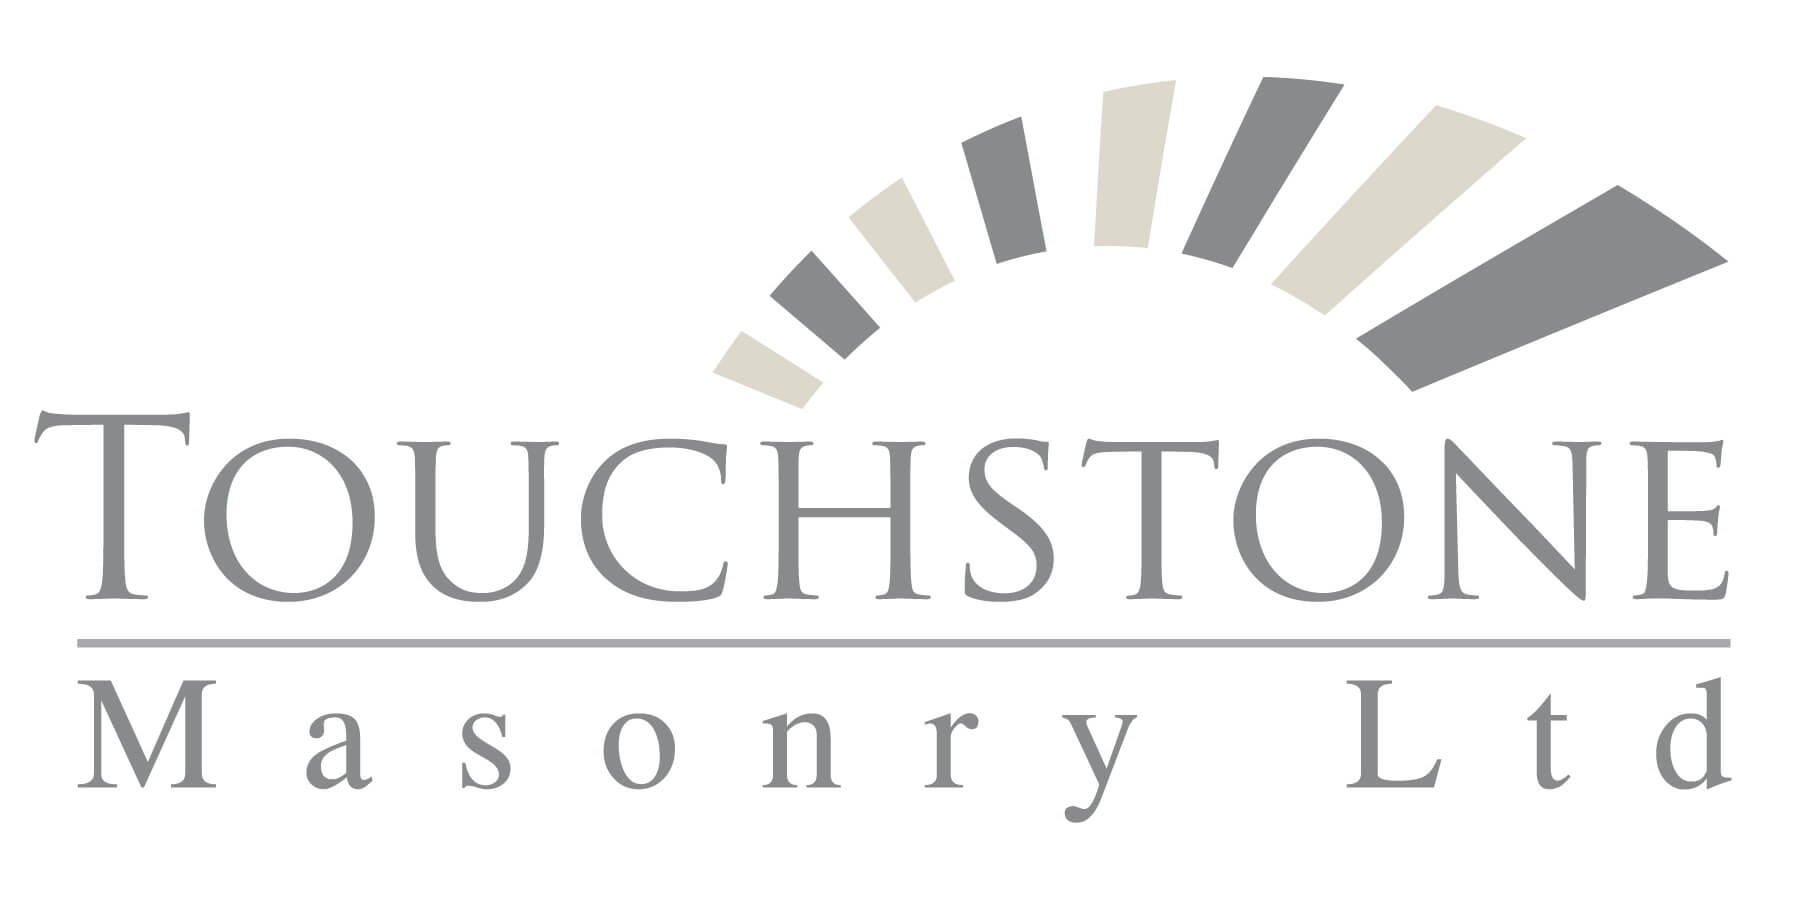 Touchstone Masonry Ltd.